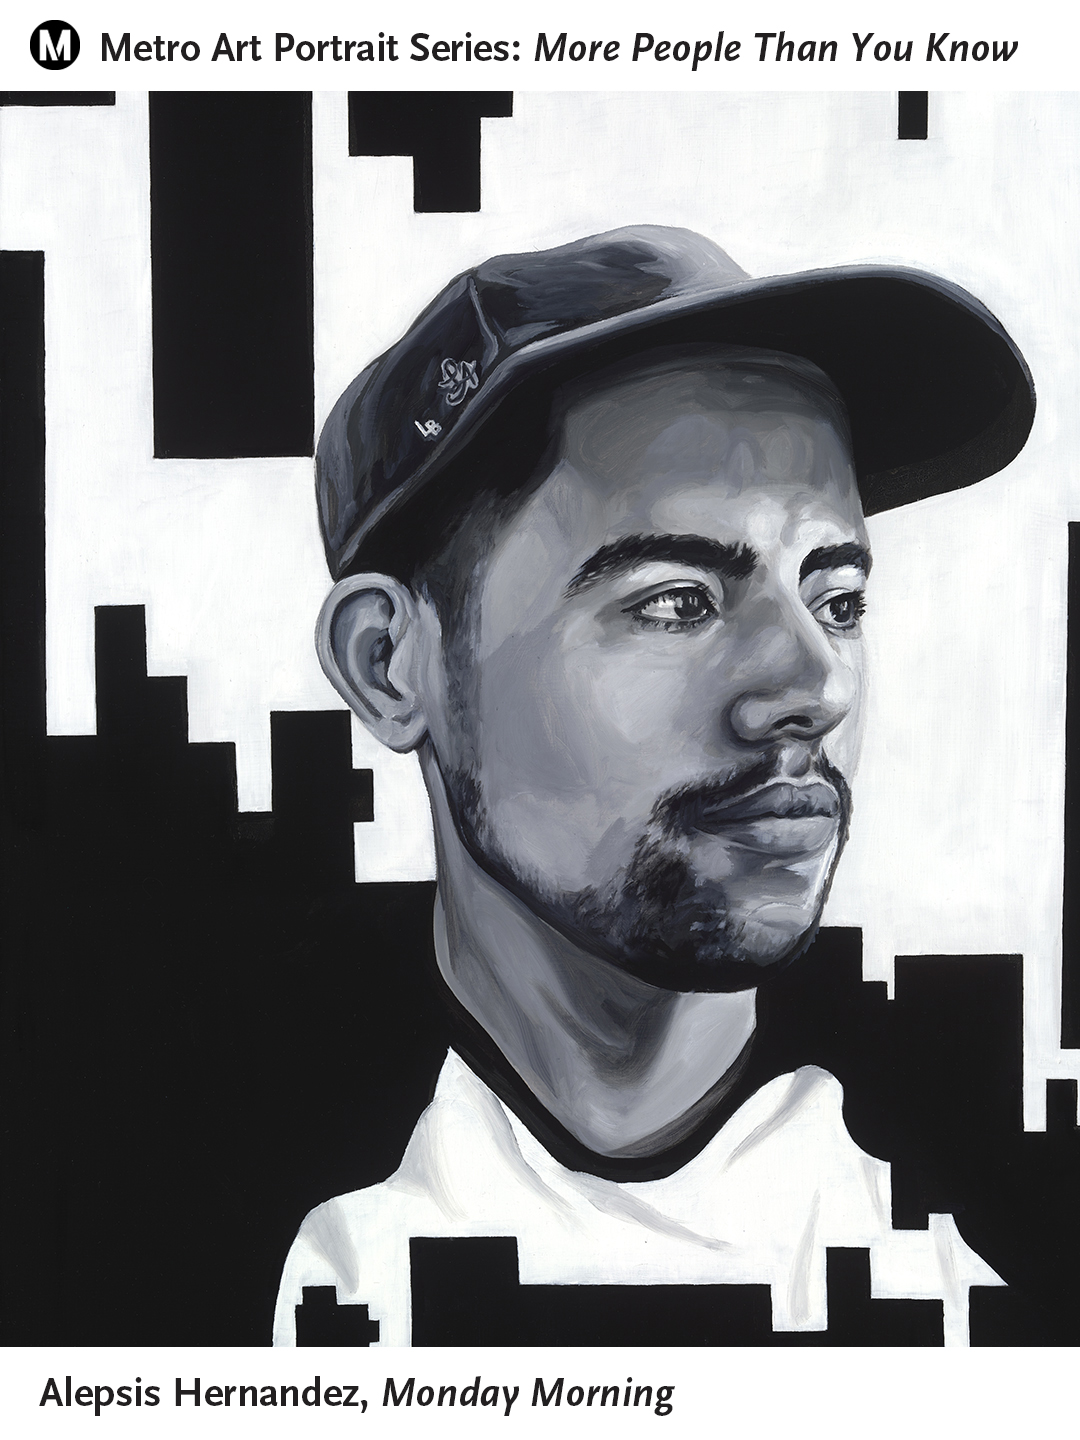 <p>Monday Morning, is a portrait of Caesar - CSULB student, full-time social worker and good friend of the artist, Alepsis Hernandez. The painting frames the portrait with geometric shapes to mimic the urban landscape between the cities of Los Angeles and Long Beach.</p>